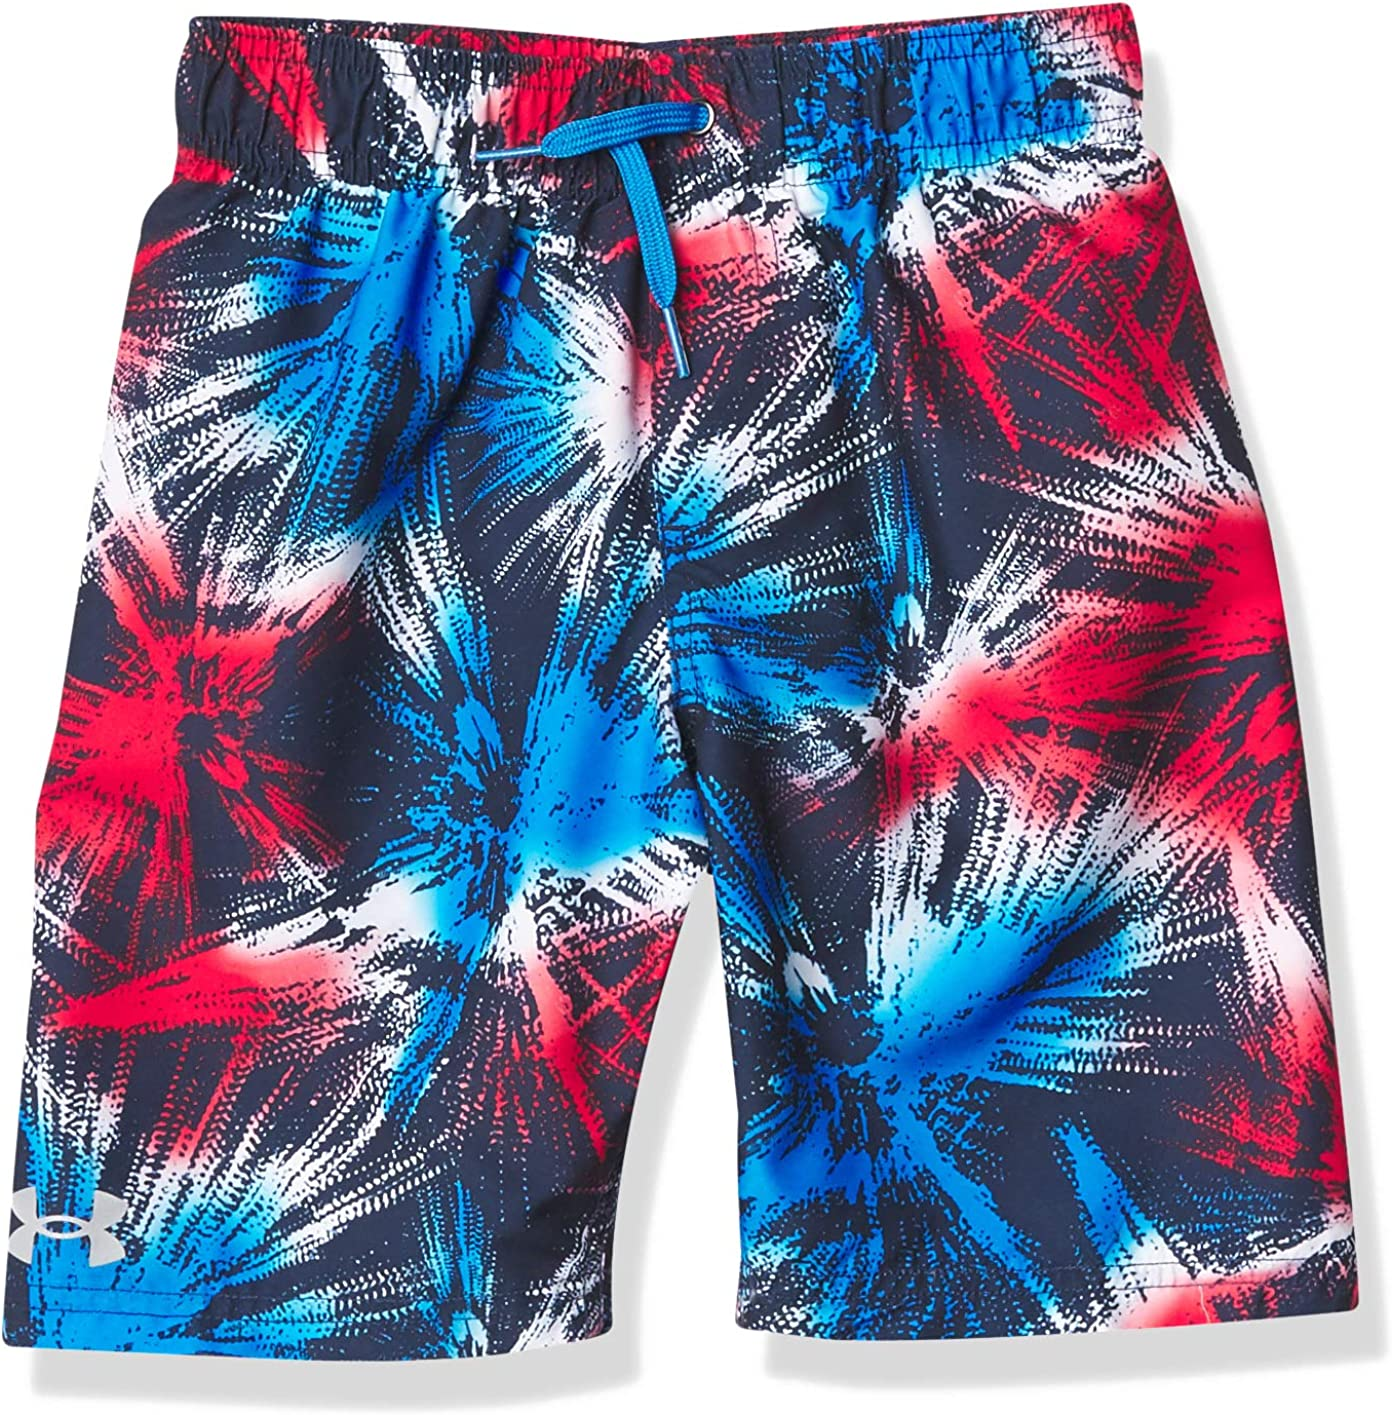 Under Armour Boys' Swim Trunks: Clothing, Shoes & Jewelry